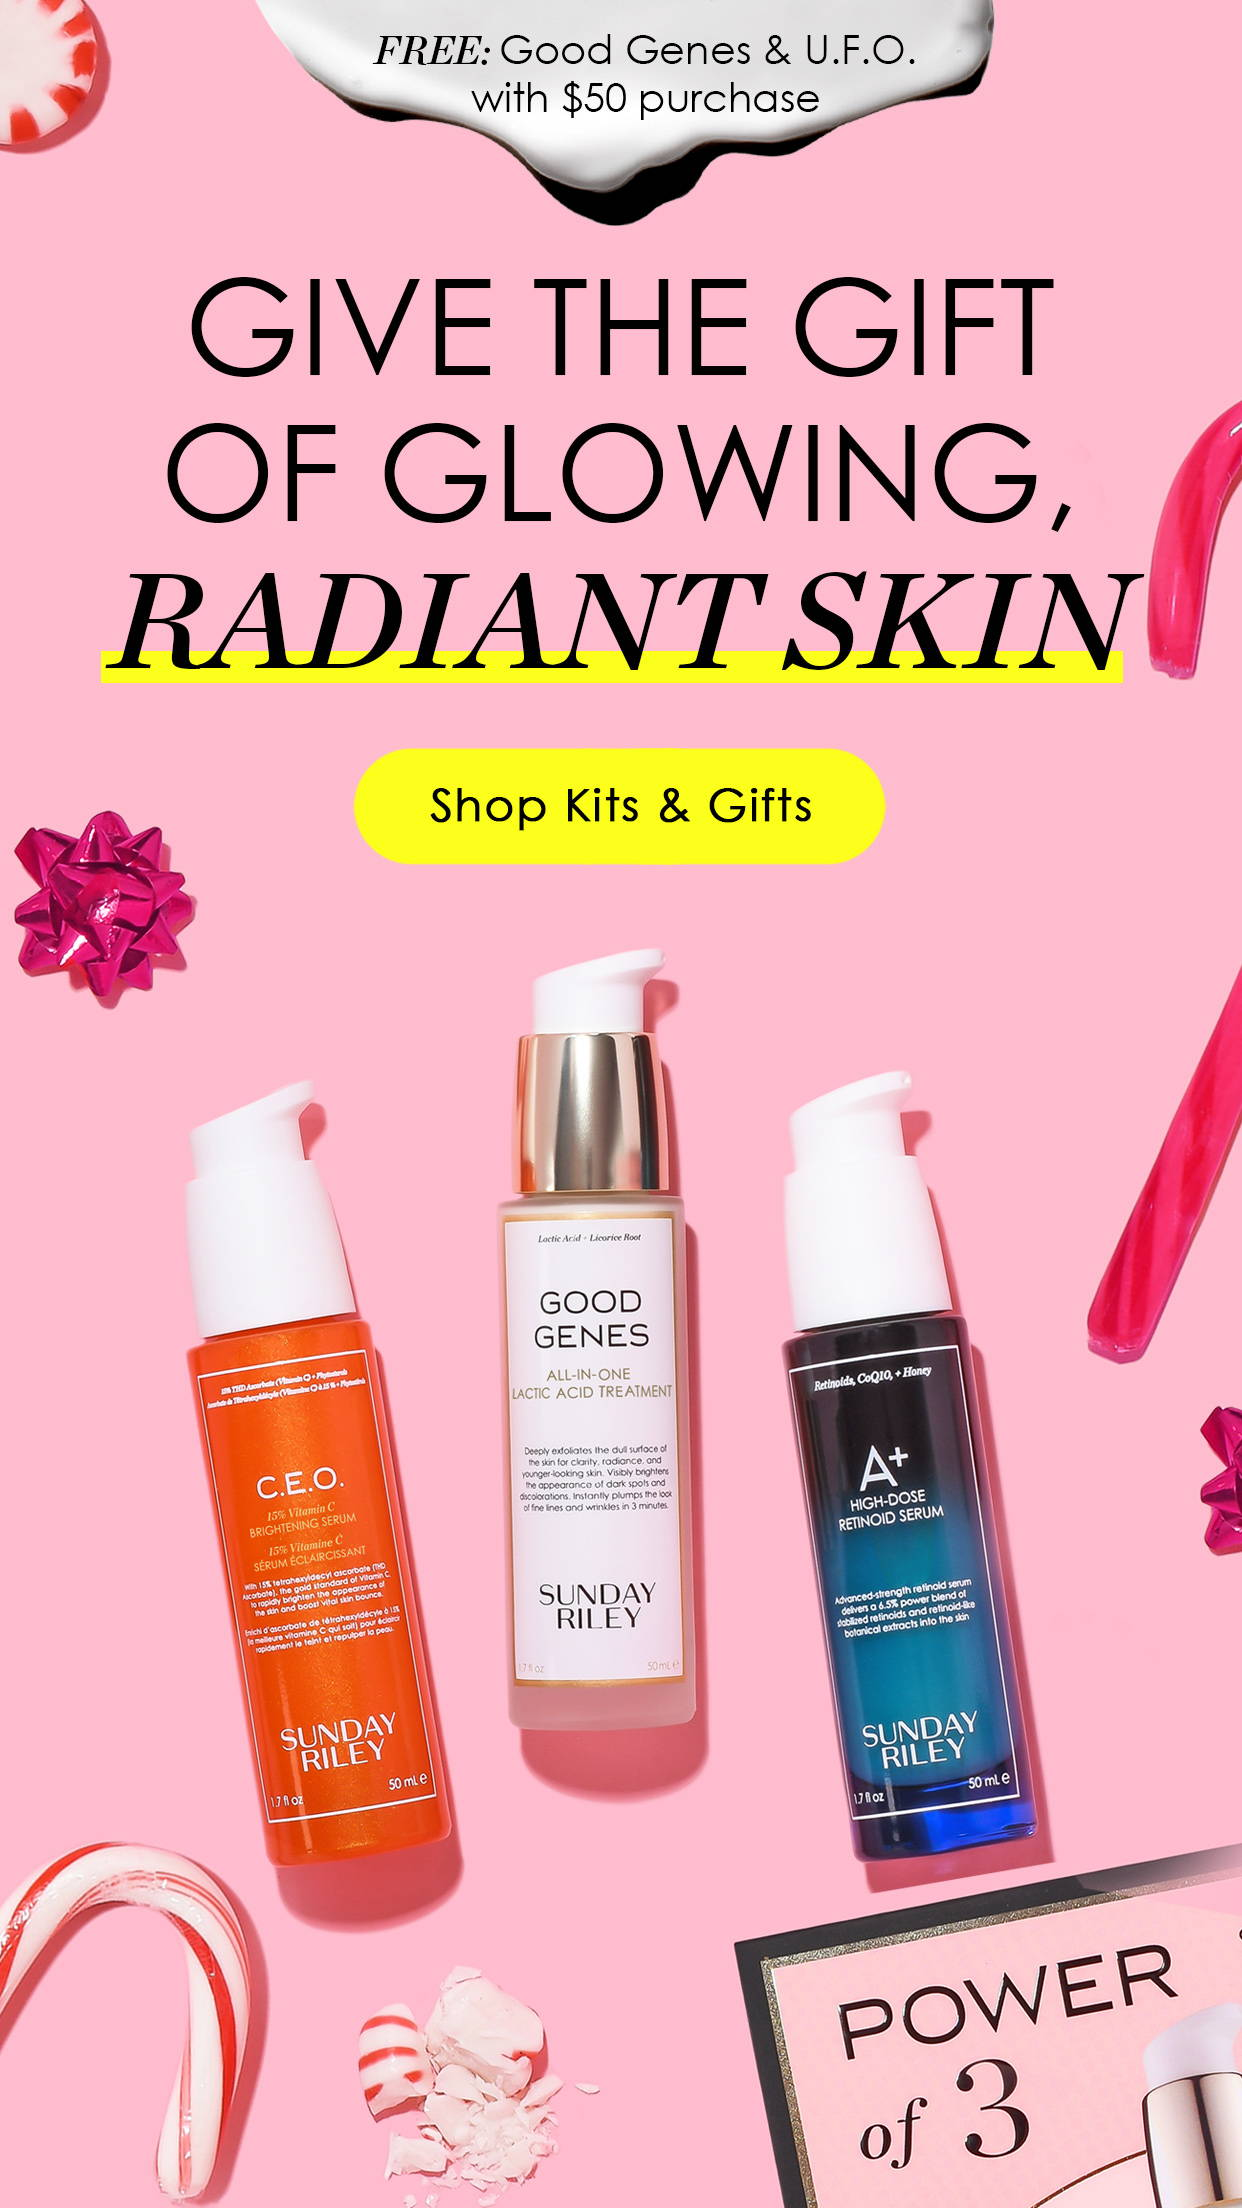 Give the Gift of Glowing, Radiant Skin: Shop Kits & Gifts